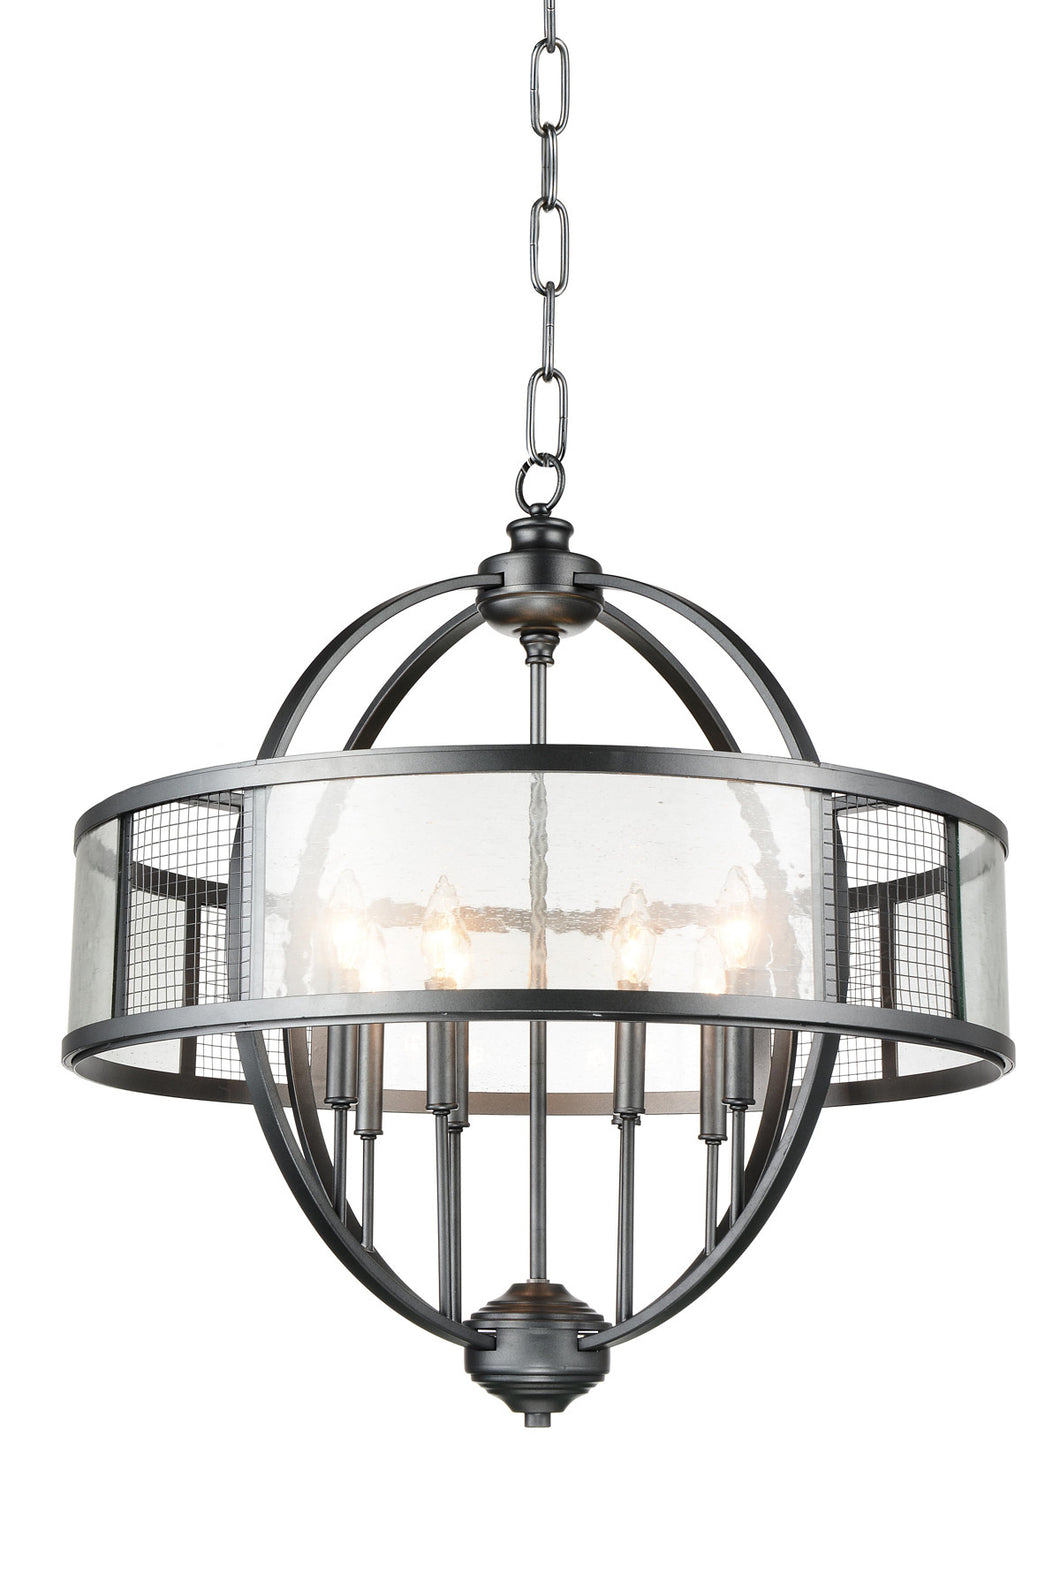 8 Light Up Chandelier with Gray finish